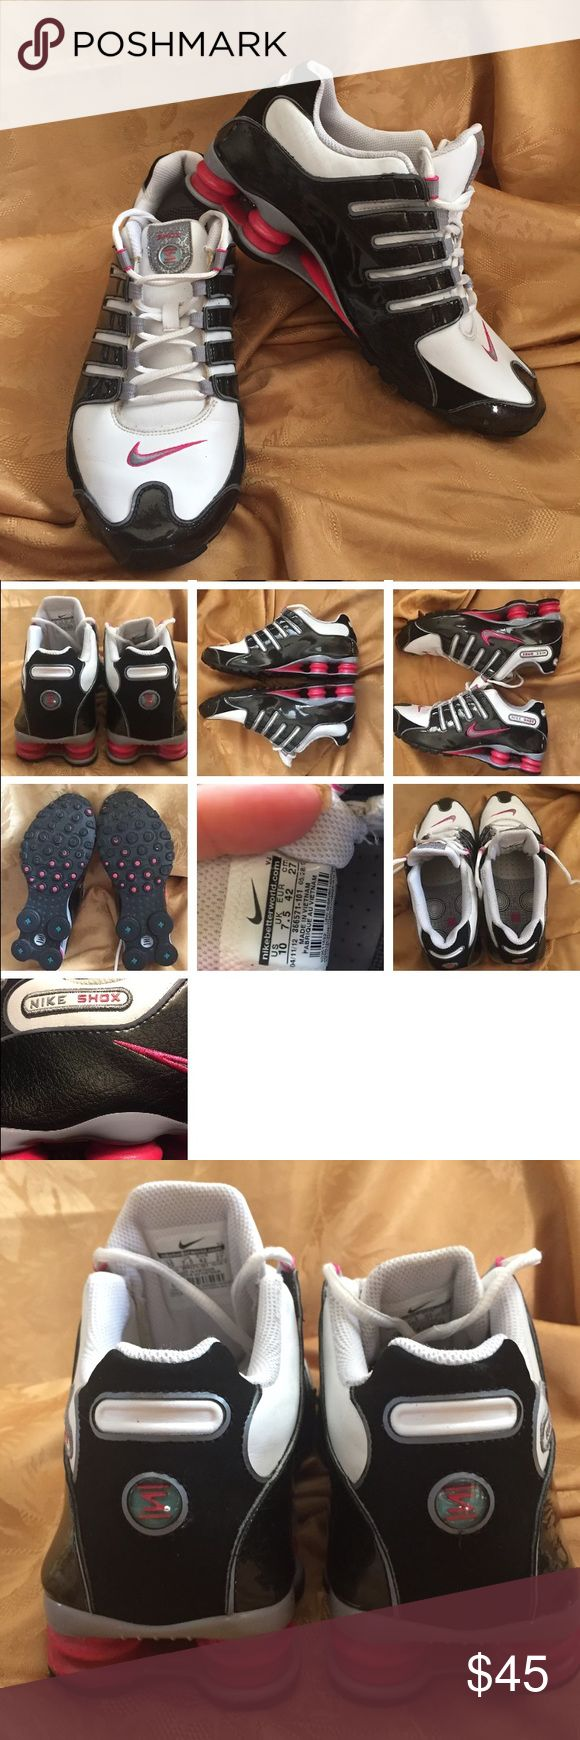 Nike Shox leather Running Shoes Womens Nike Shox NZ 366571-101 Running Shoes Womens 8 Black White Pink Fuschia Nice white leather with a black clear coat over a black leather look with fuchsia shox GREAT CONDITION WITH SIGNS OF NORMAL WEAR Nike Shoes Sneakers